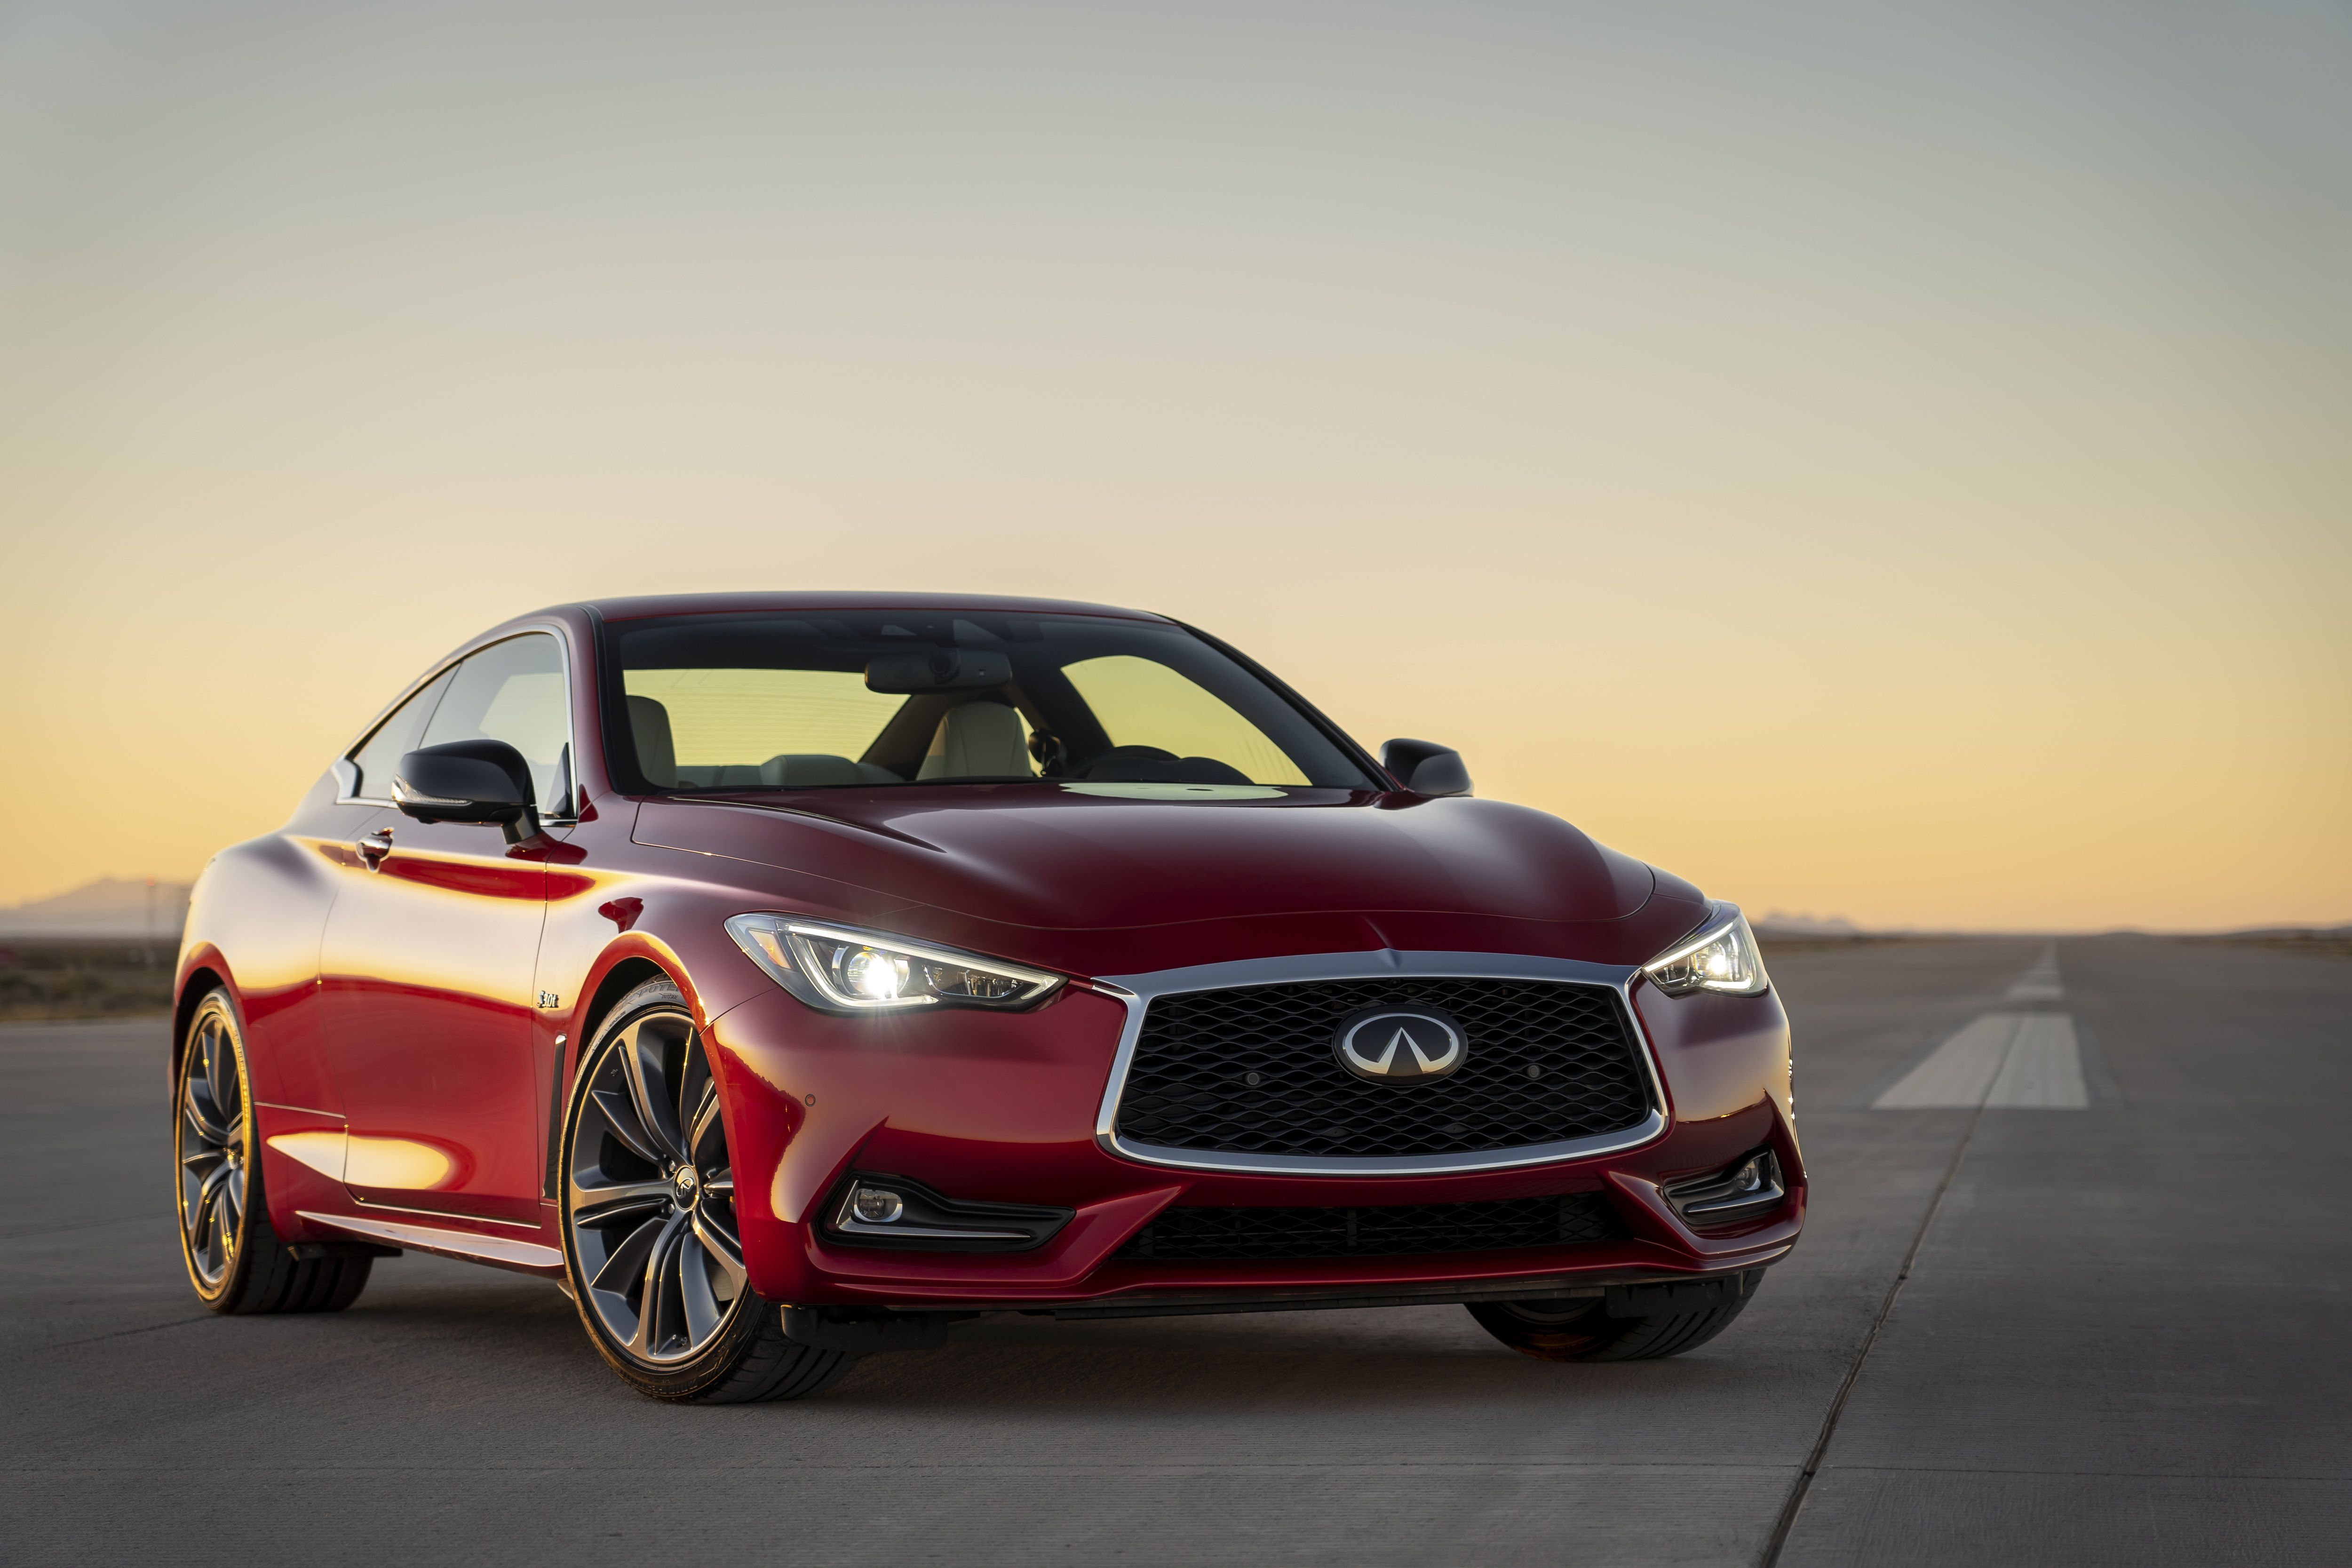 2020 Infiniti Q60 Coupe Speed Test